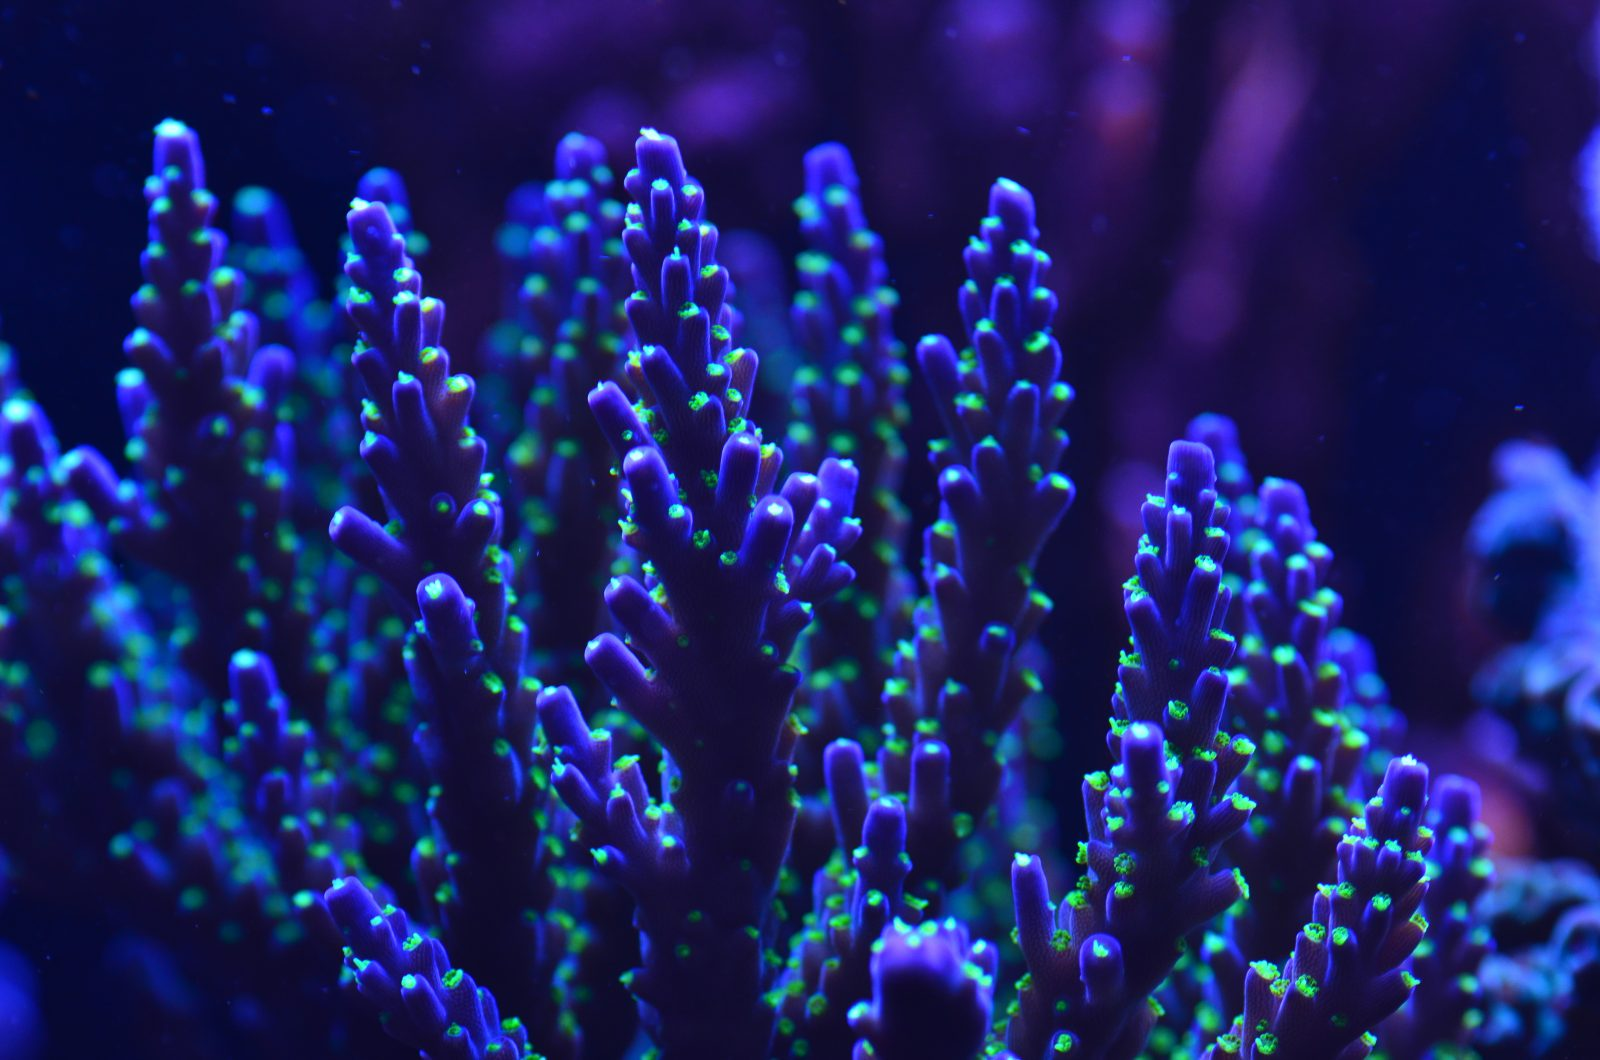 dark-blue-sps-coral-macro-photo-led-light